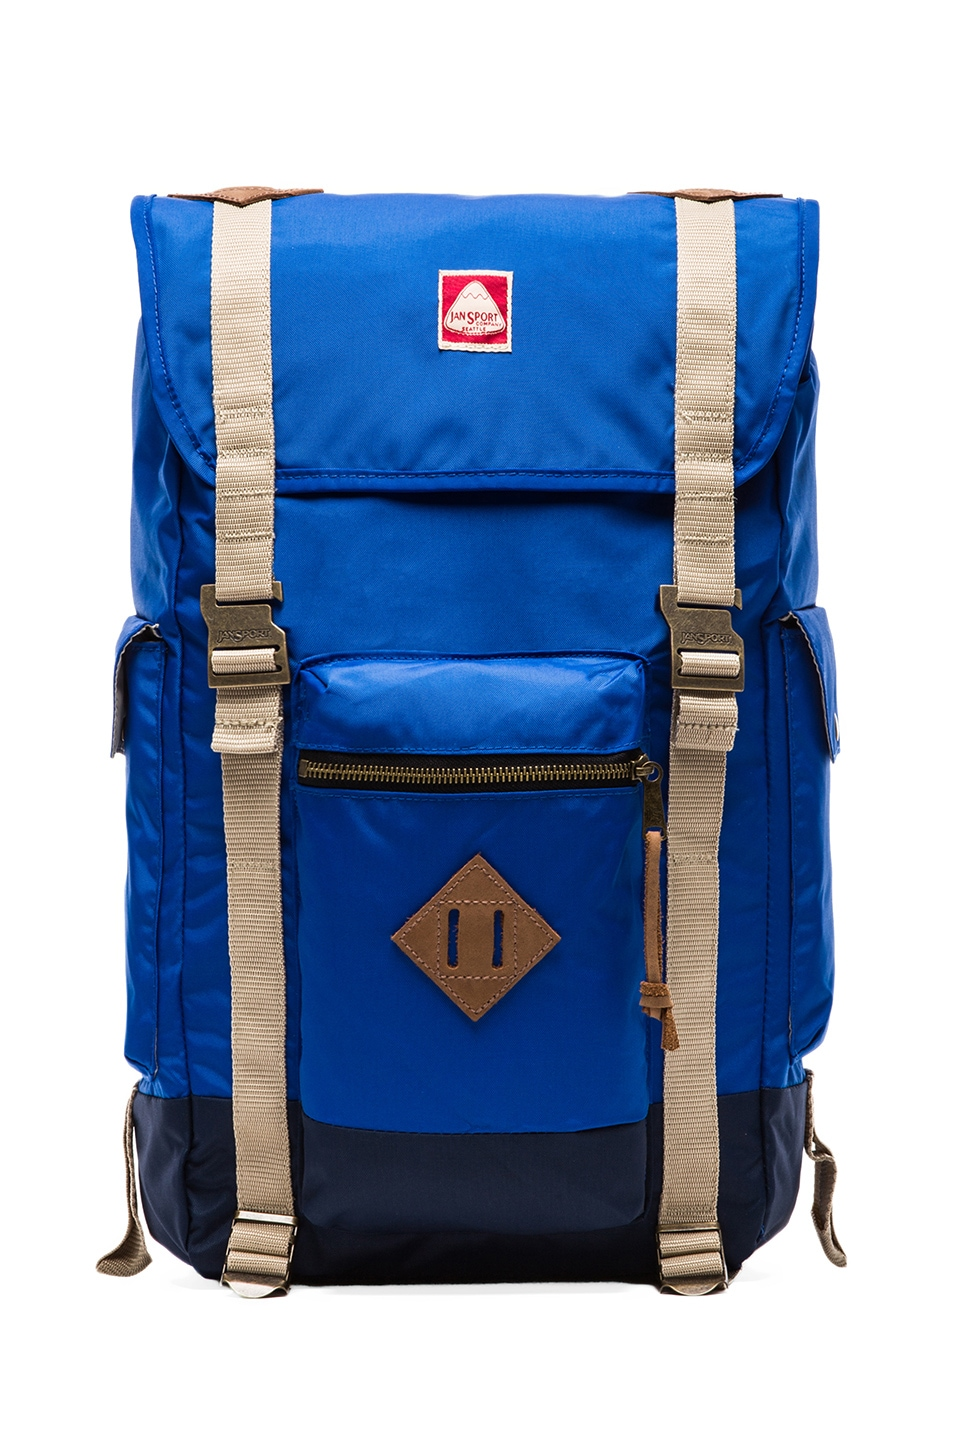 Jansport Adobe in Blue Streak